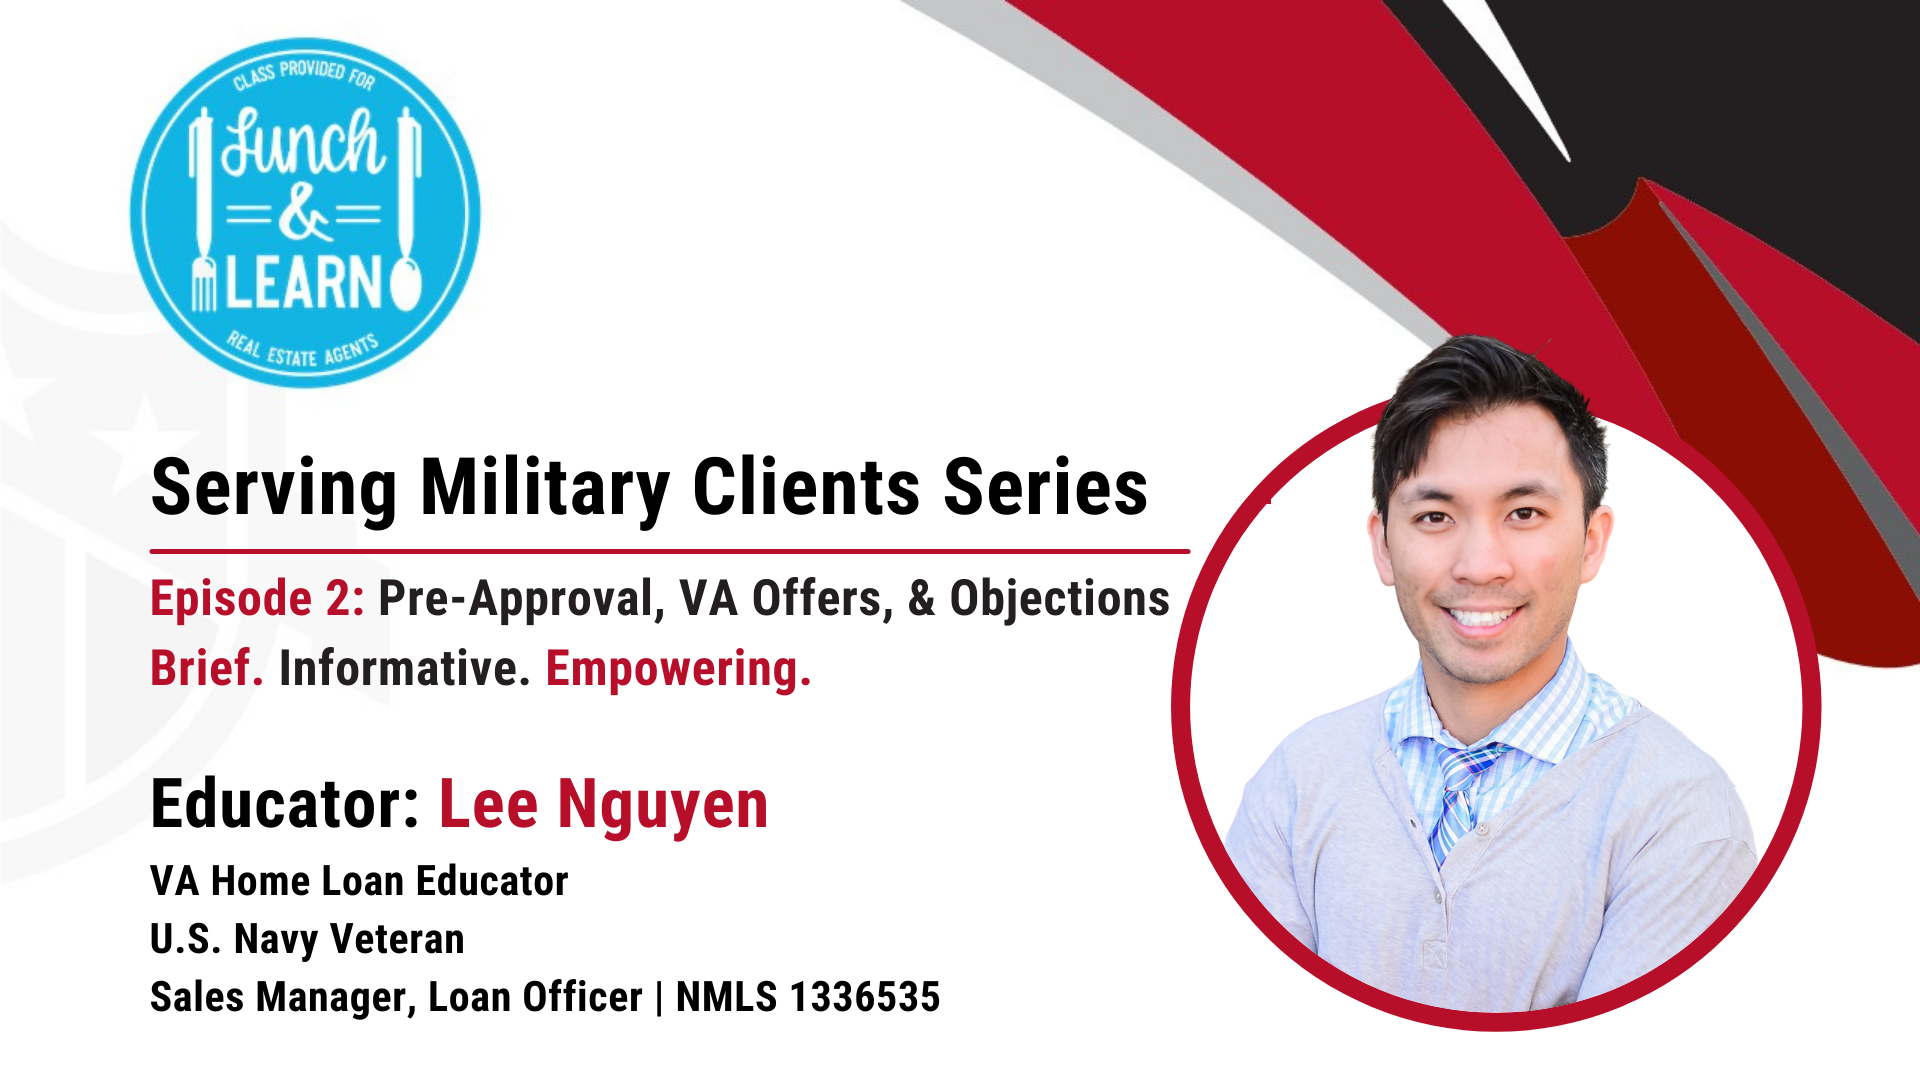 Episode 2: Serving Military Clients Series